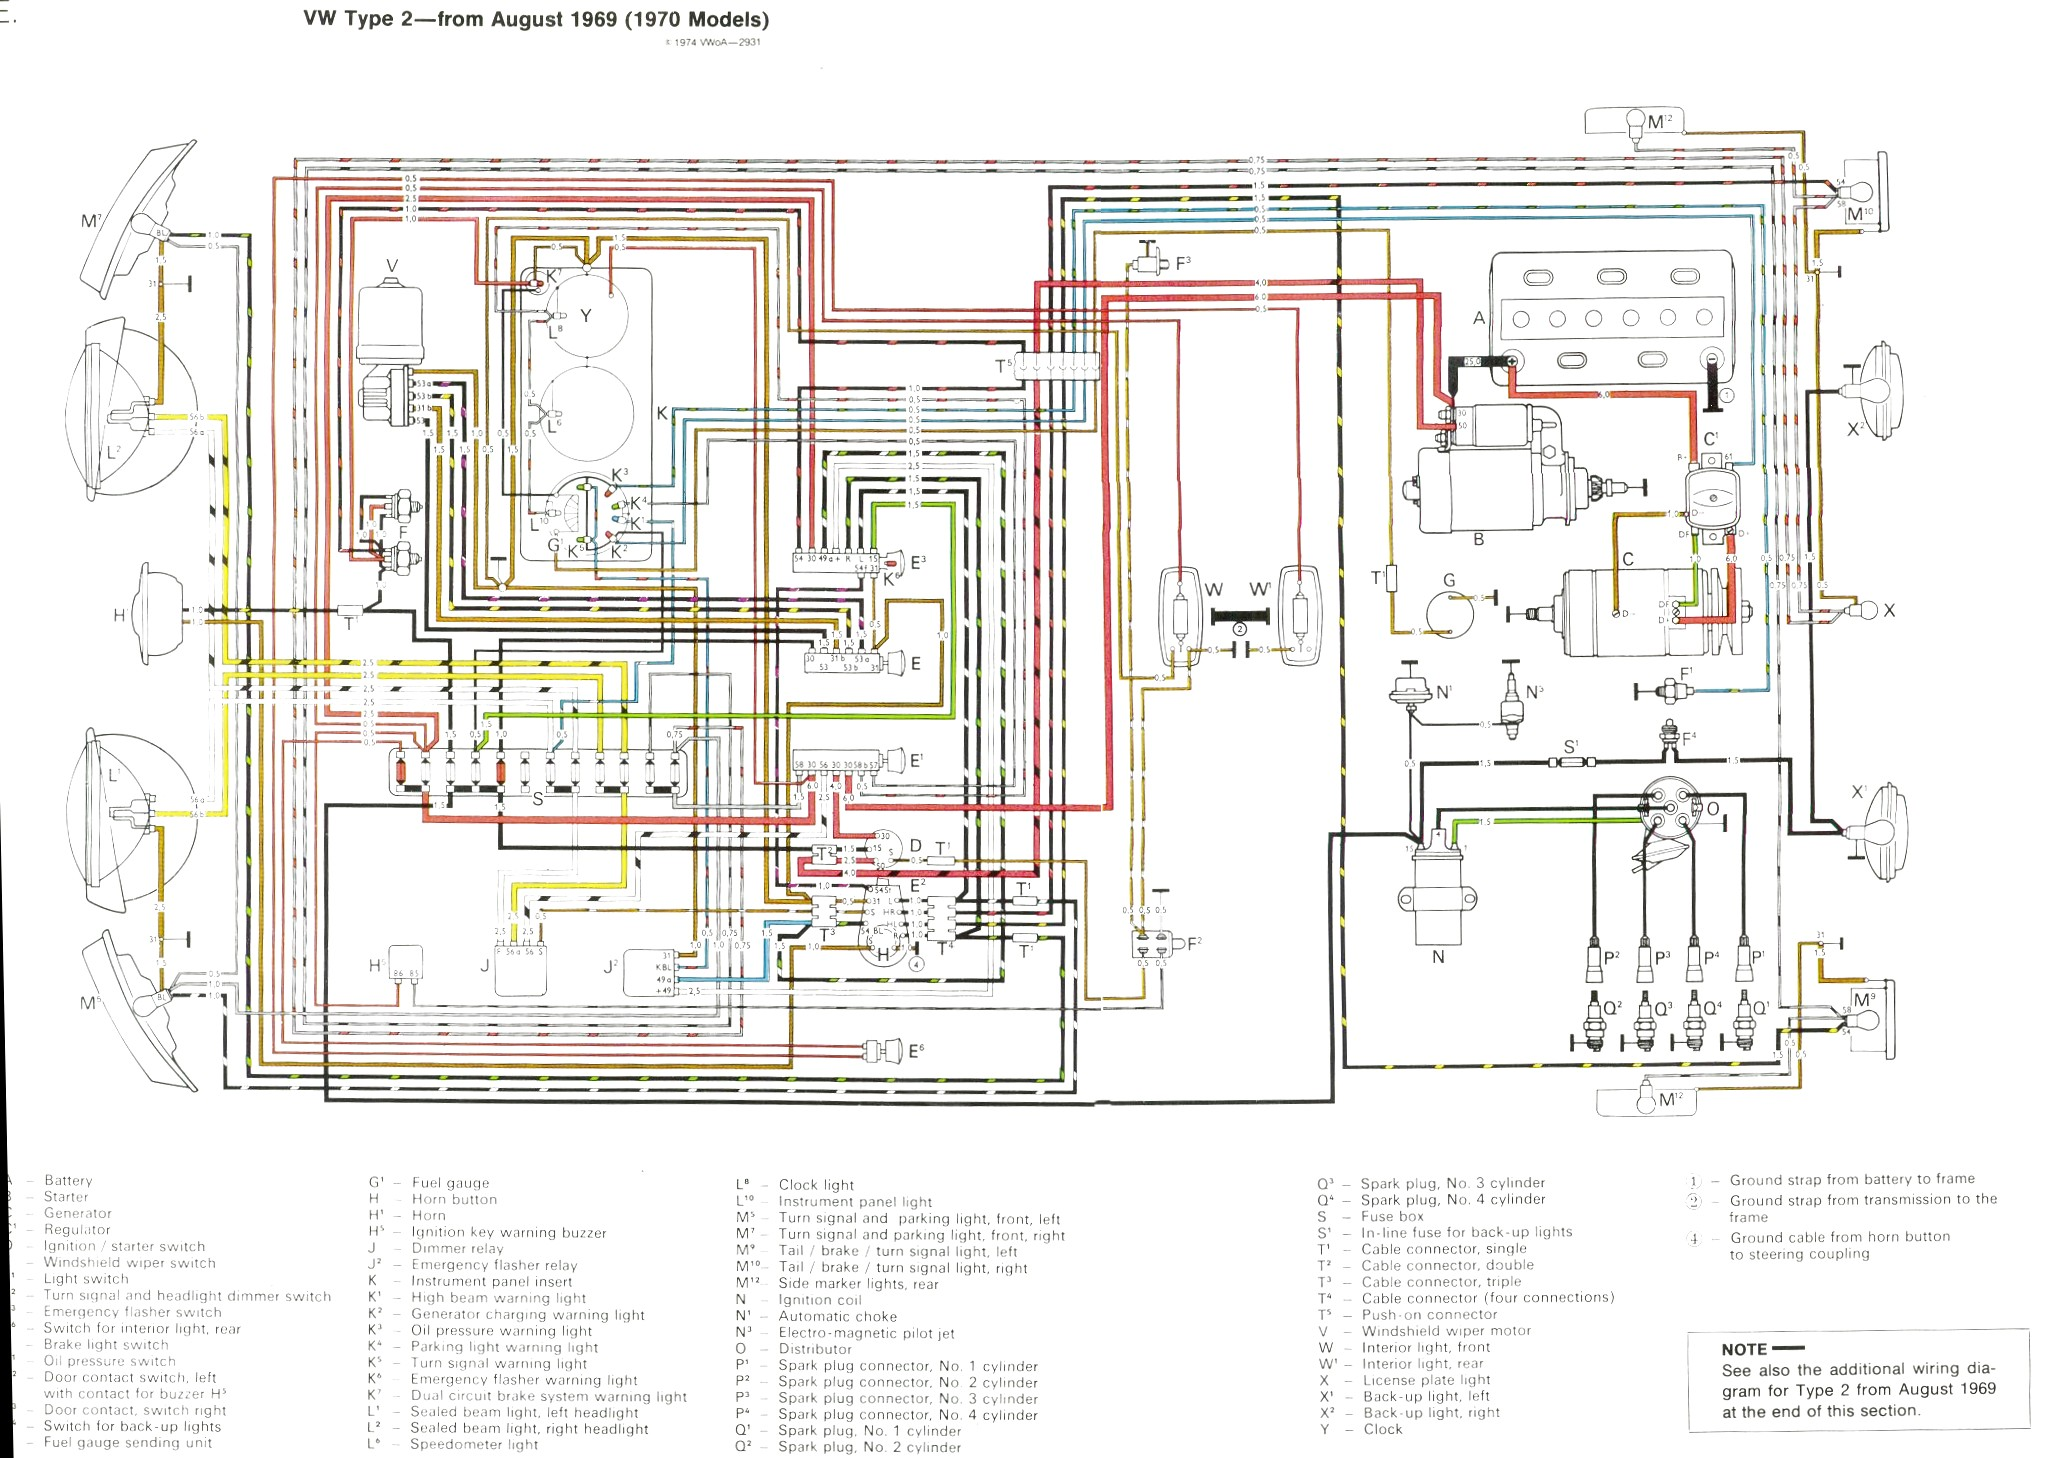 bus 69 70 vintagebus com vw bus (and other) wiring diagrams Wiring Harness Diagram at metegol.co